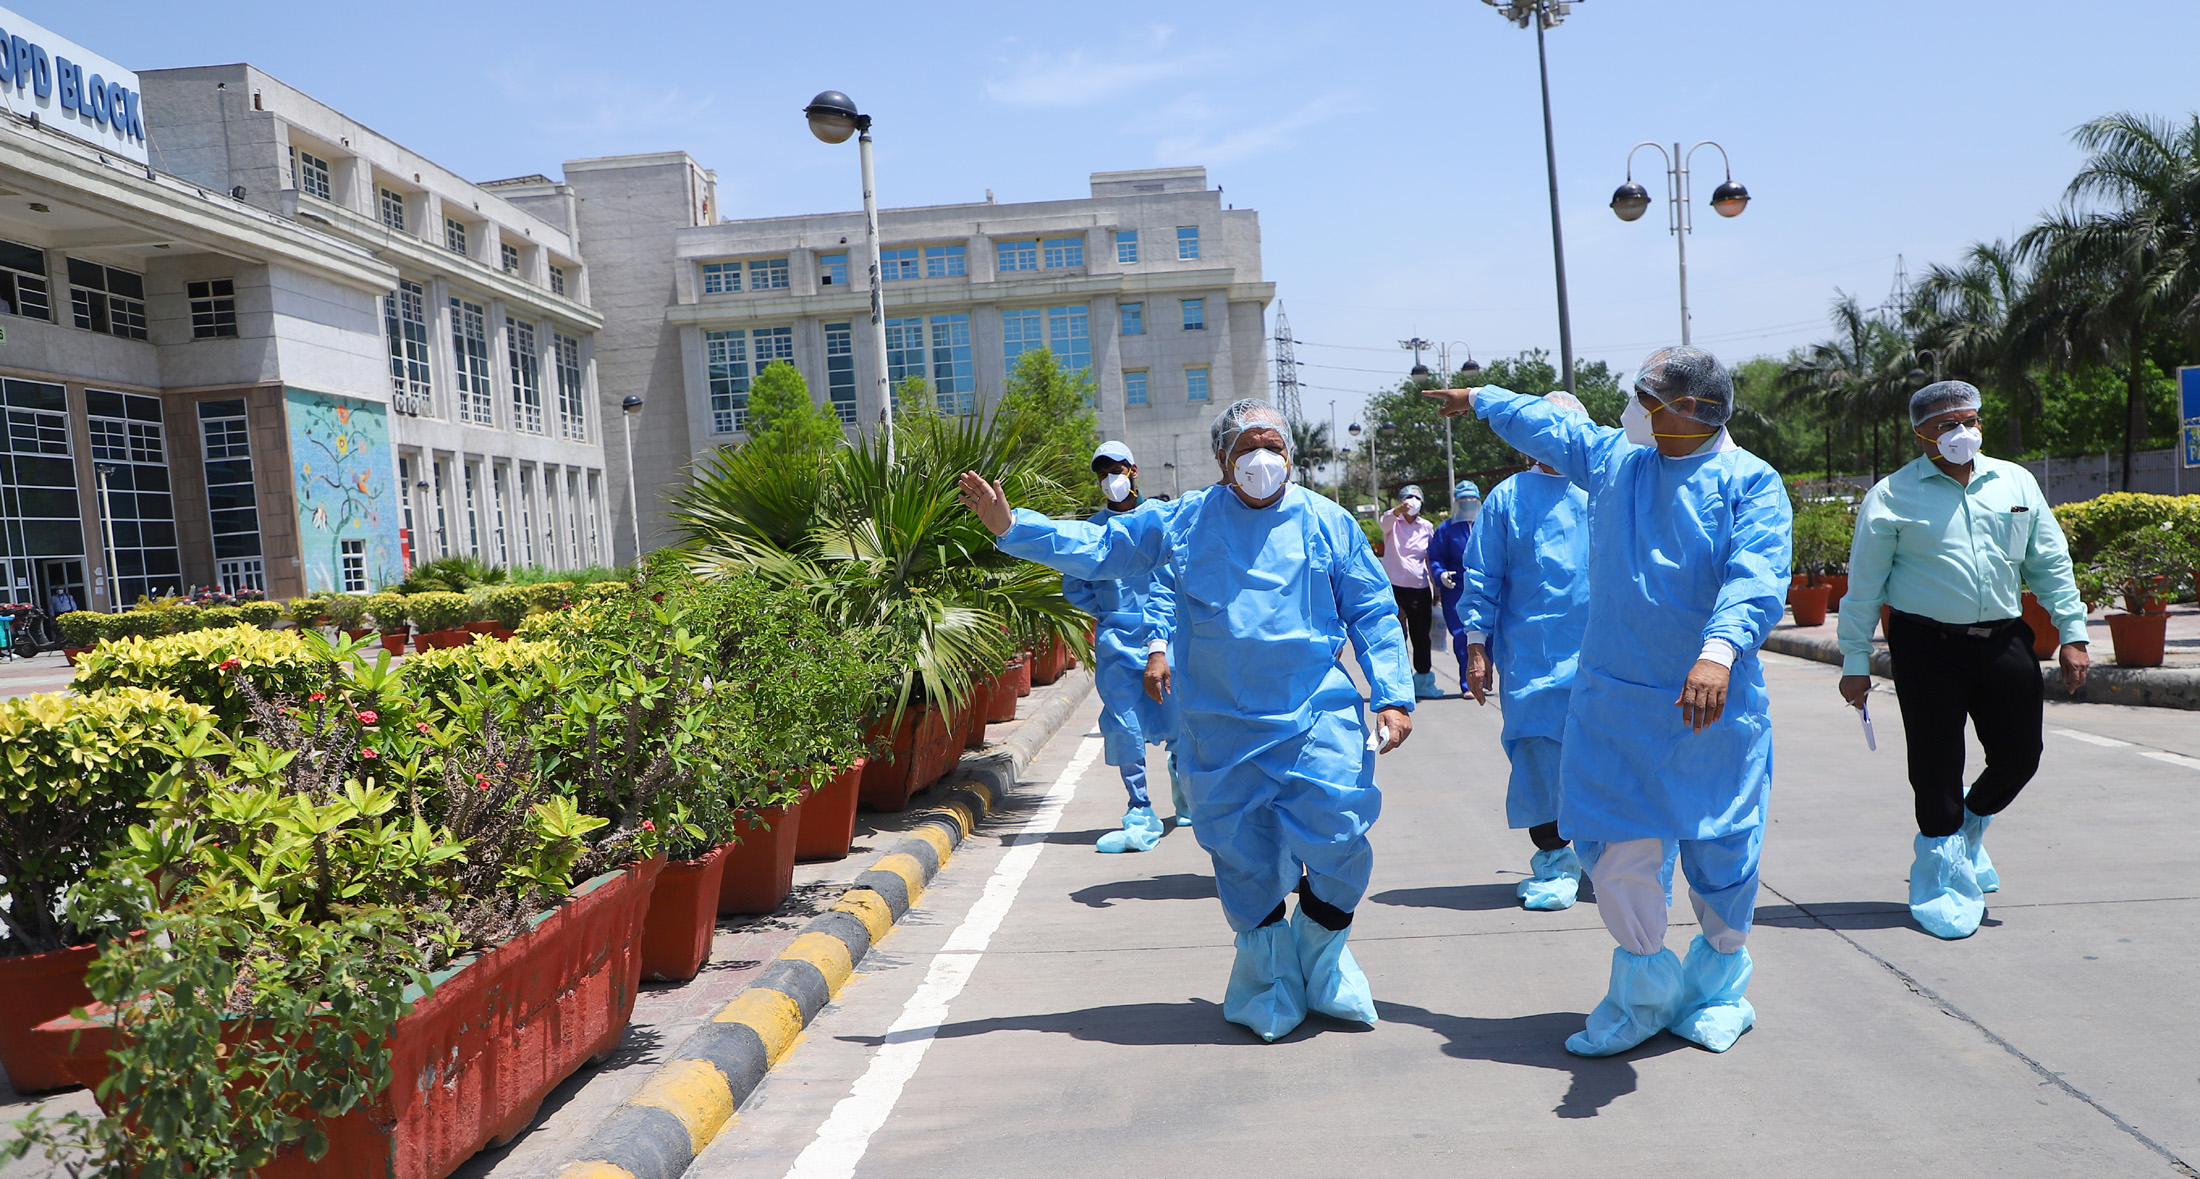 The Union Minister for Health & Family Welfare, Science & Technology and Earth Sciences, Dr. Harsh Vardhan visiting the Rajiv Gandhi Super Specialty Hospital to review status of COVID-19 management, in New Delhi on April 19, 2020.